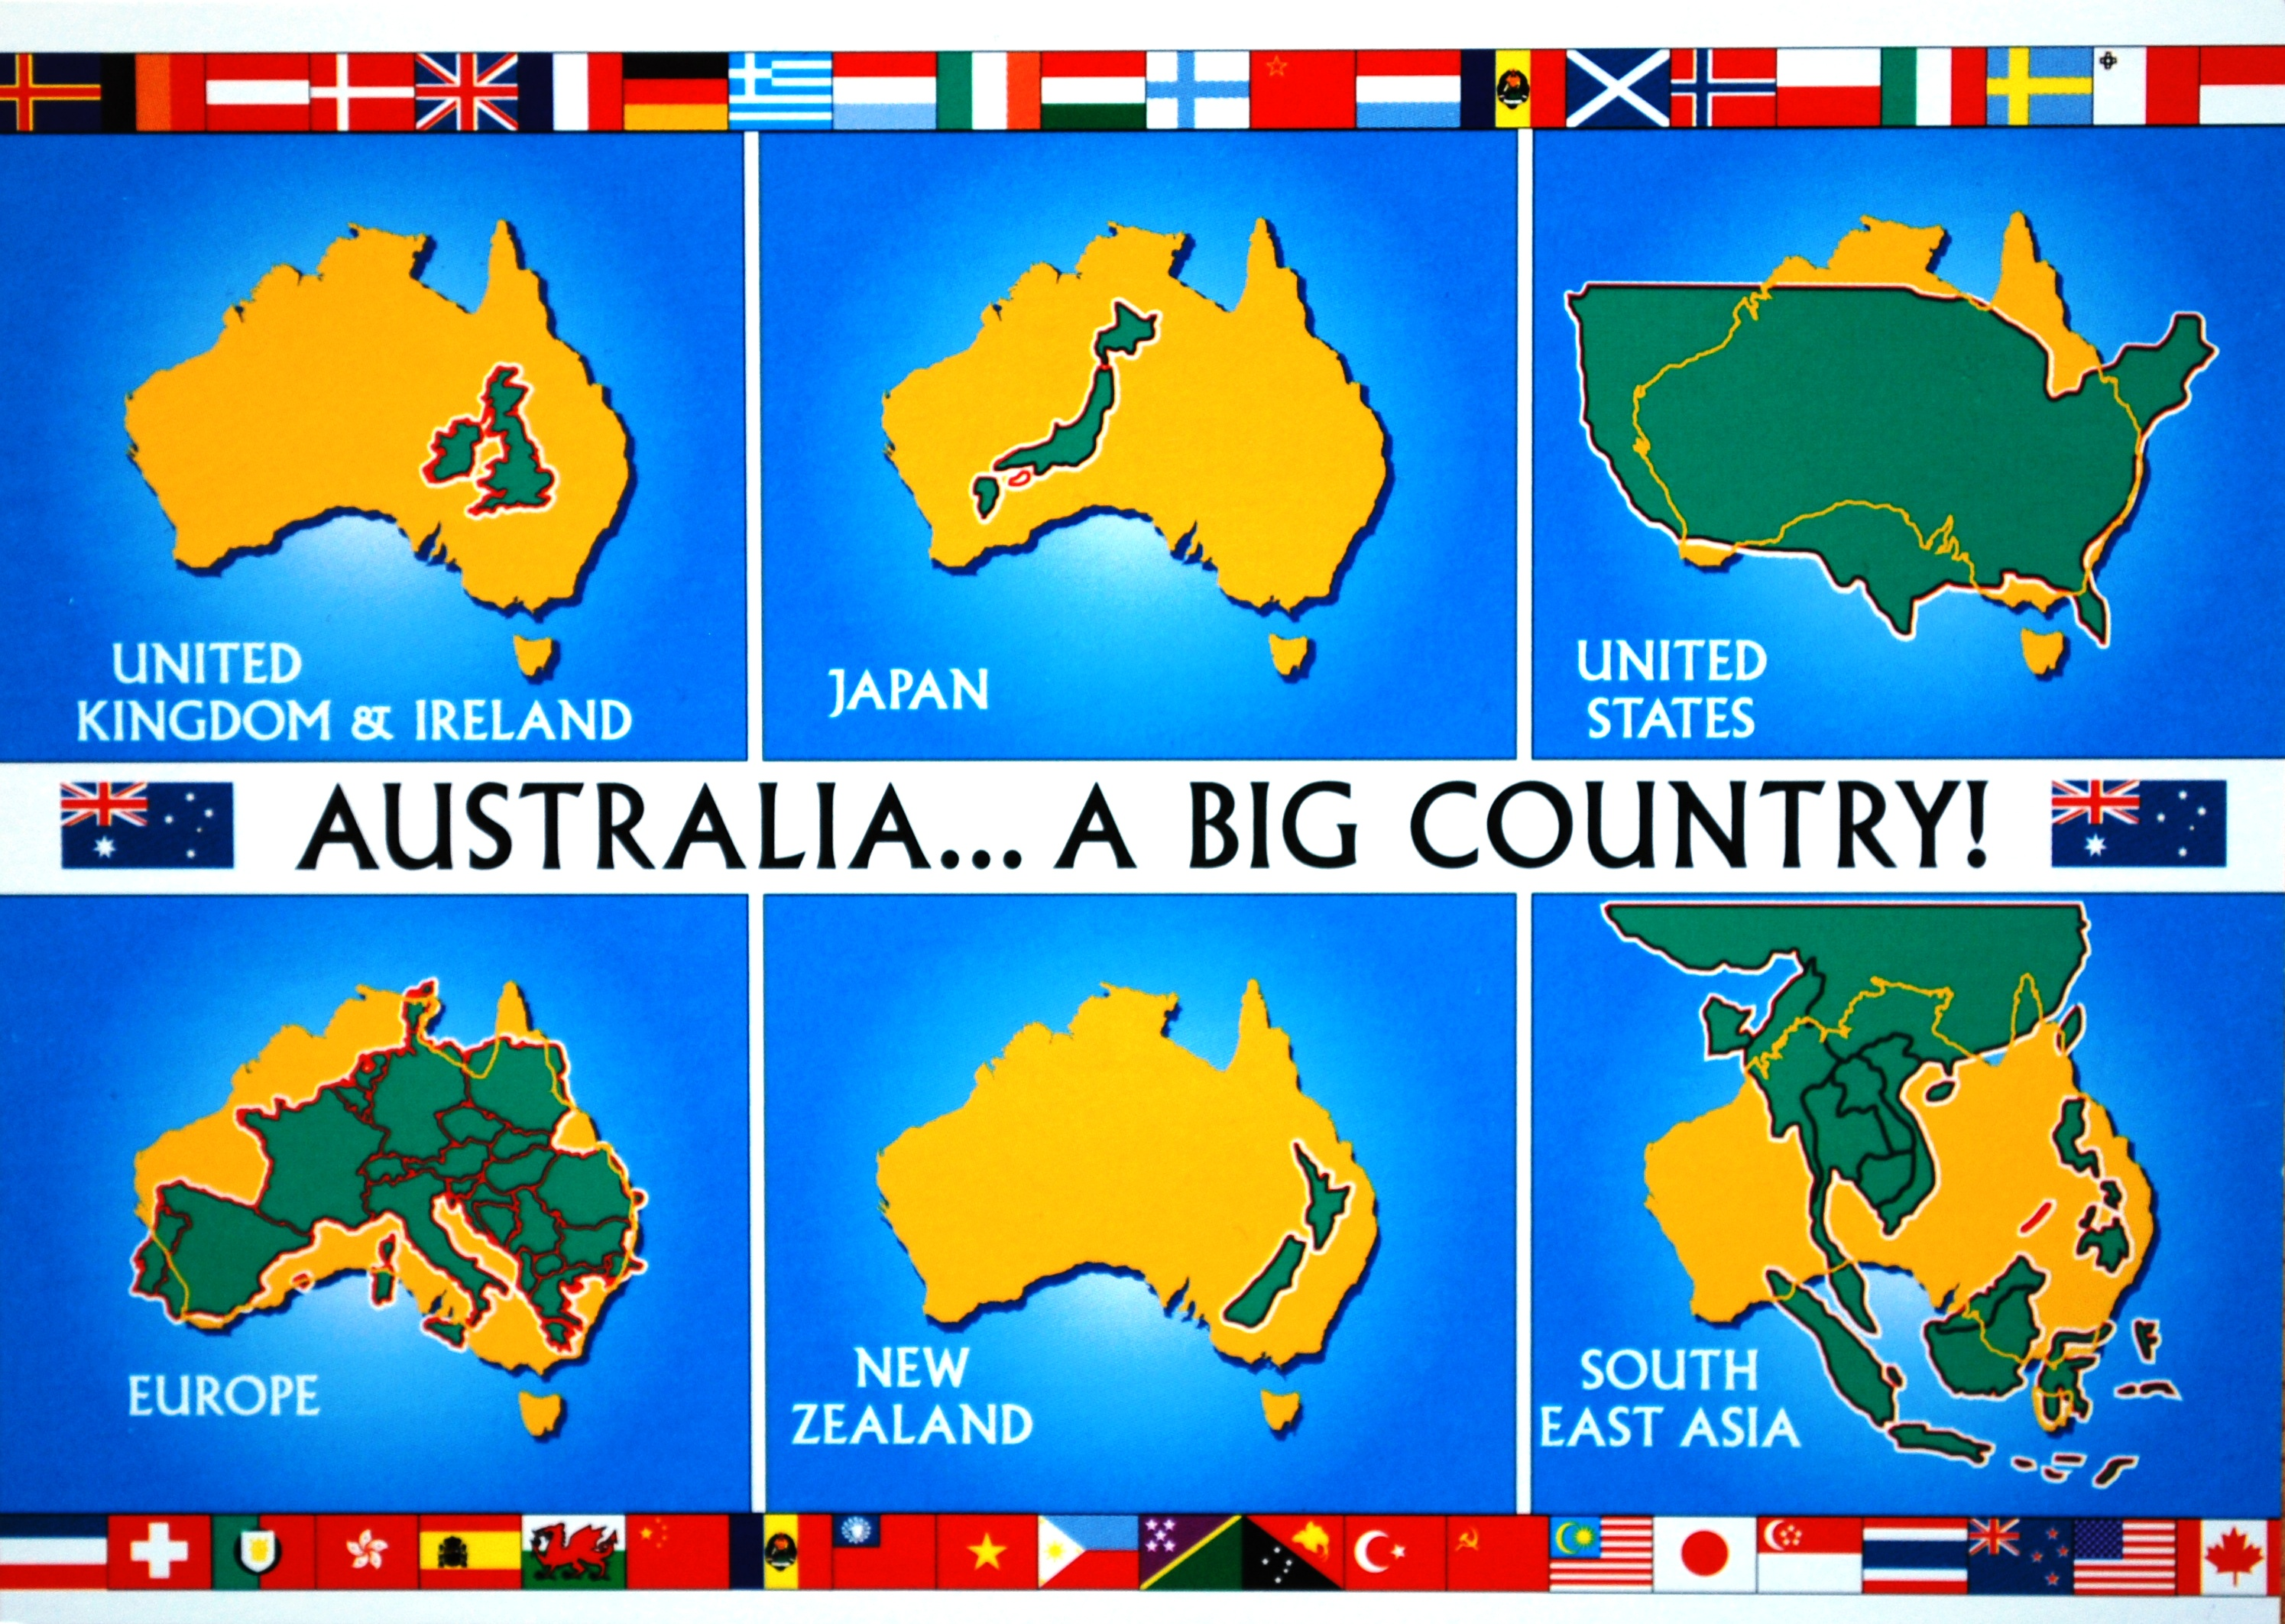 Australia a world leader in bigness big think australia a world leader in bigness gumiabroncs Choice Image